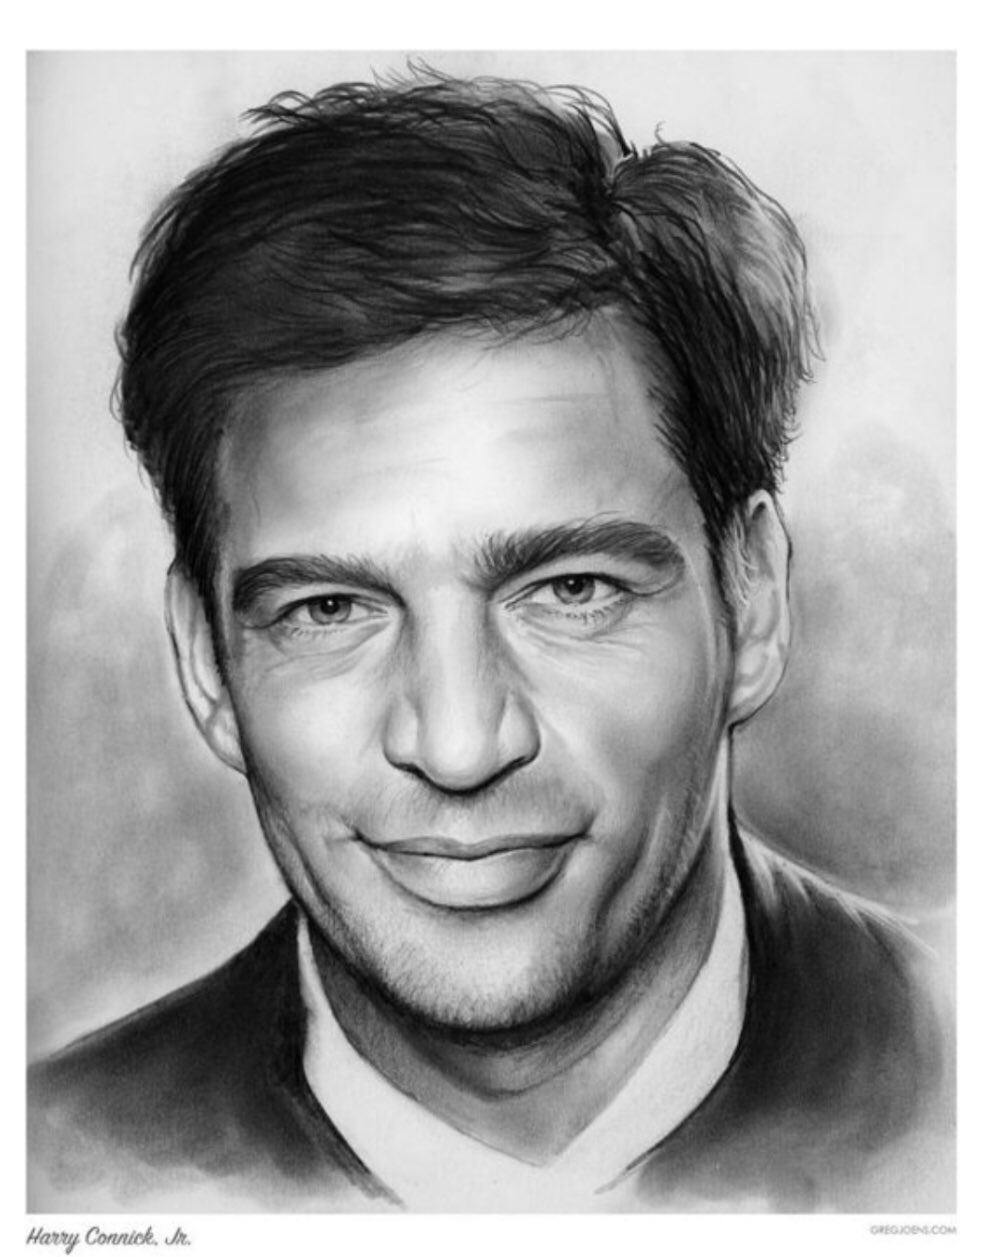 Happy birthday Harry Connick Jr